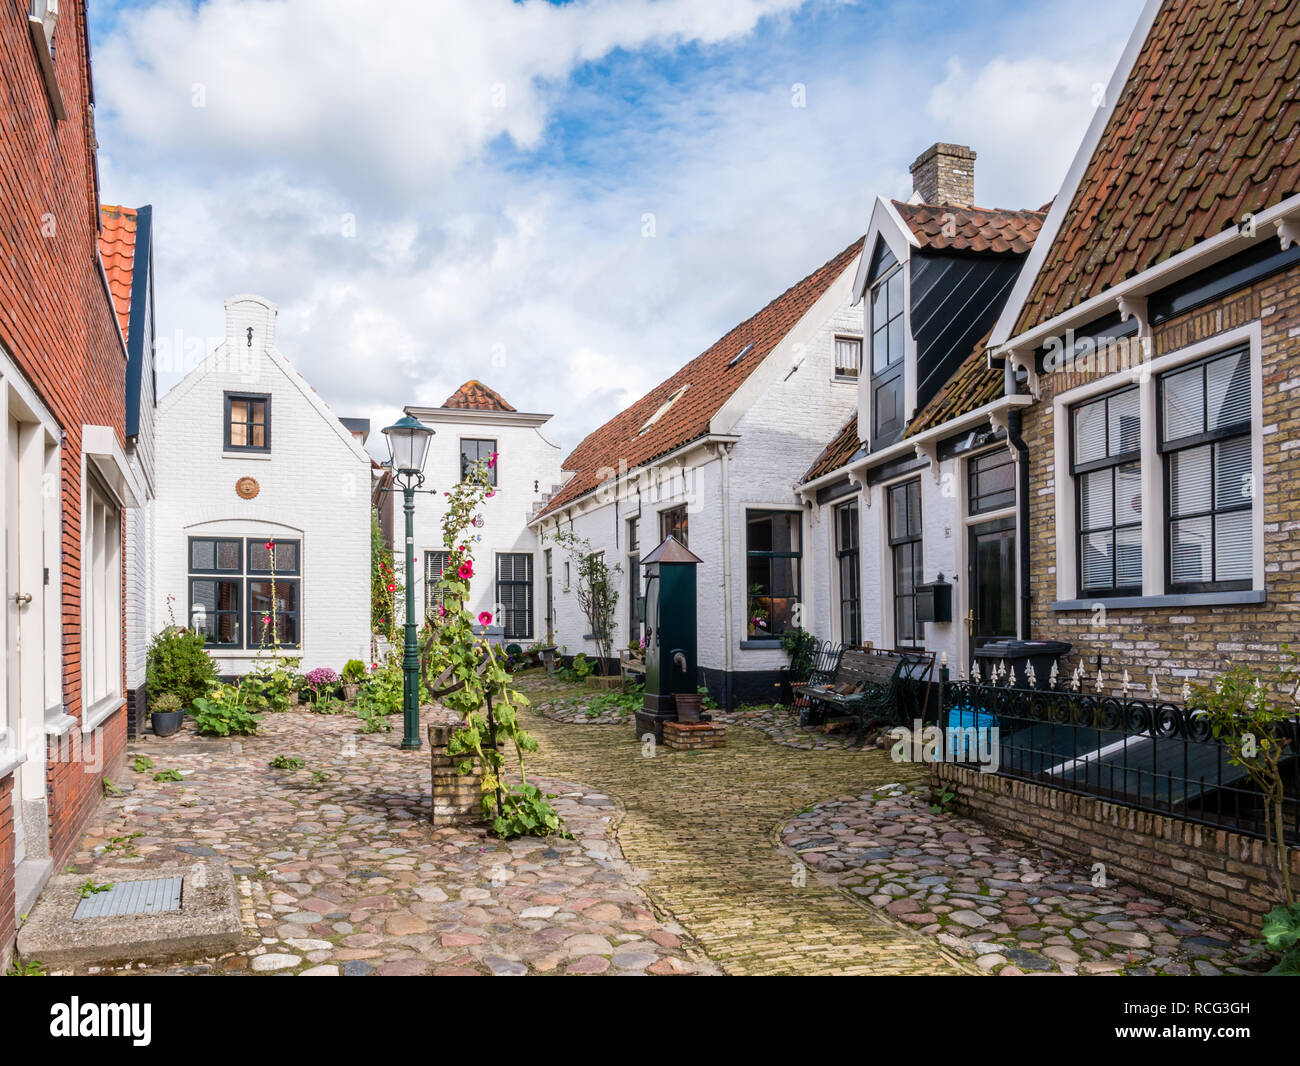 Historic courtyard Hofje with old white houses and water pump in Weverstraat of Den Burg town on Texel island, Netherlands Stock Photo